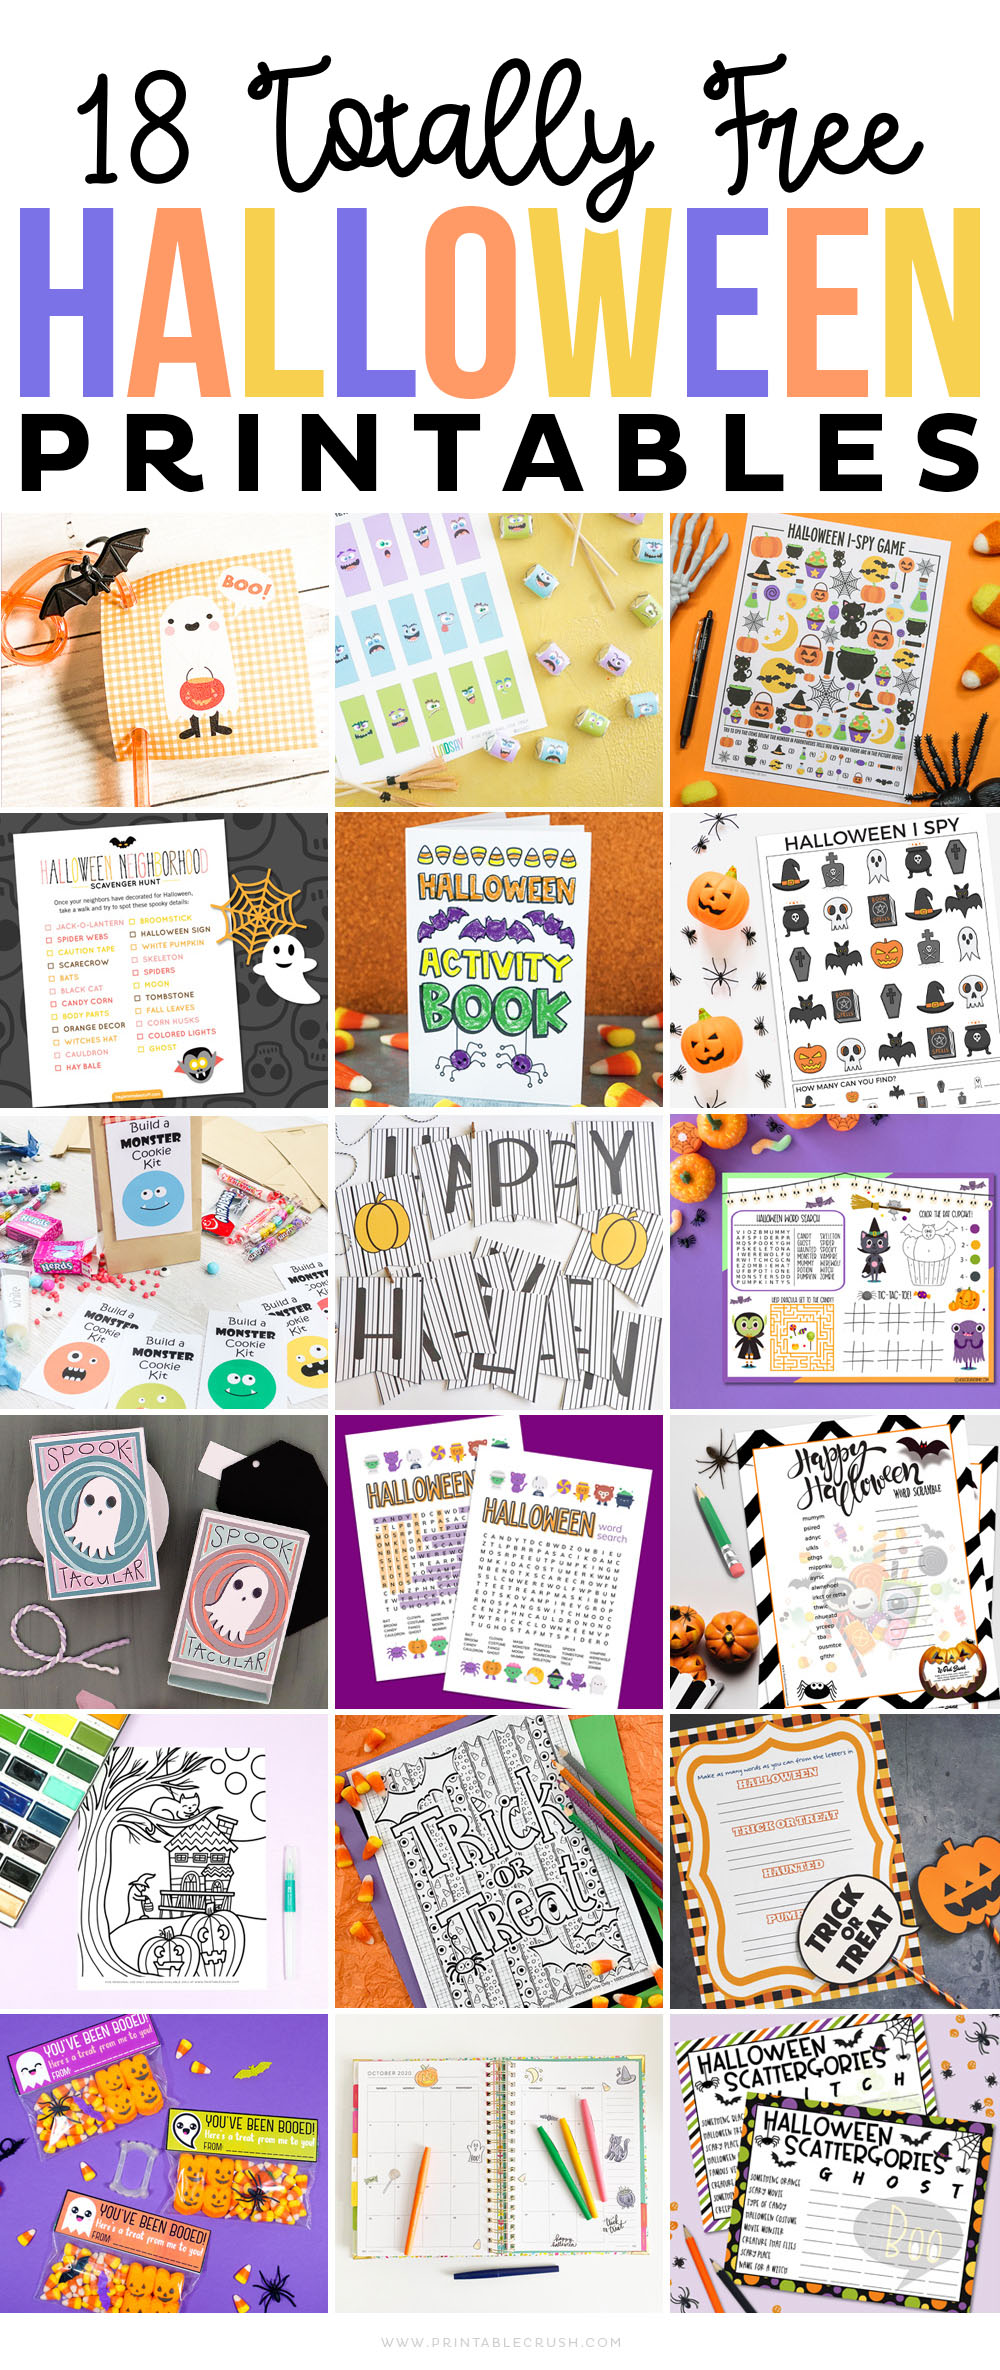 18 Totally Free Halloween Printables